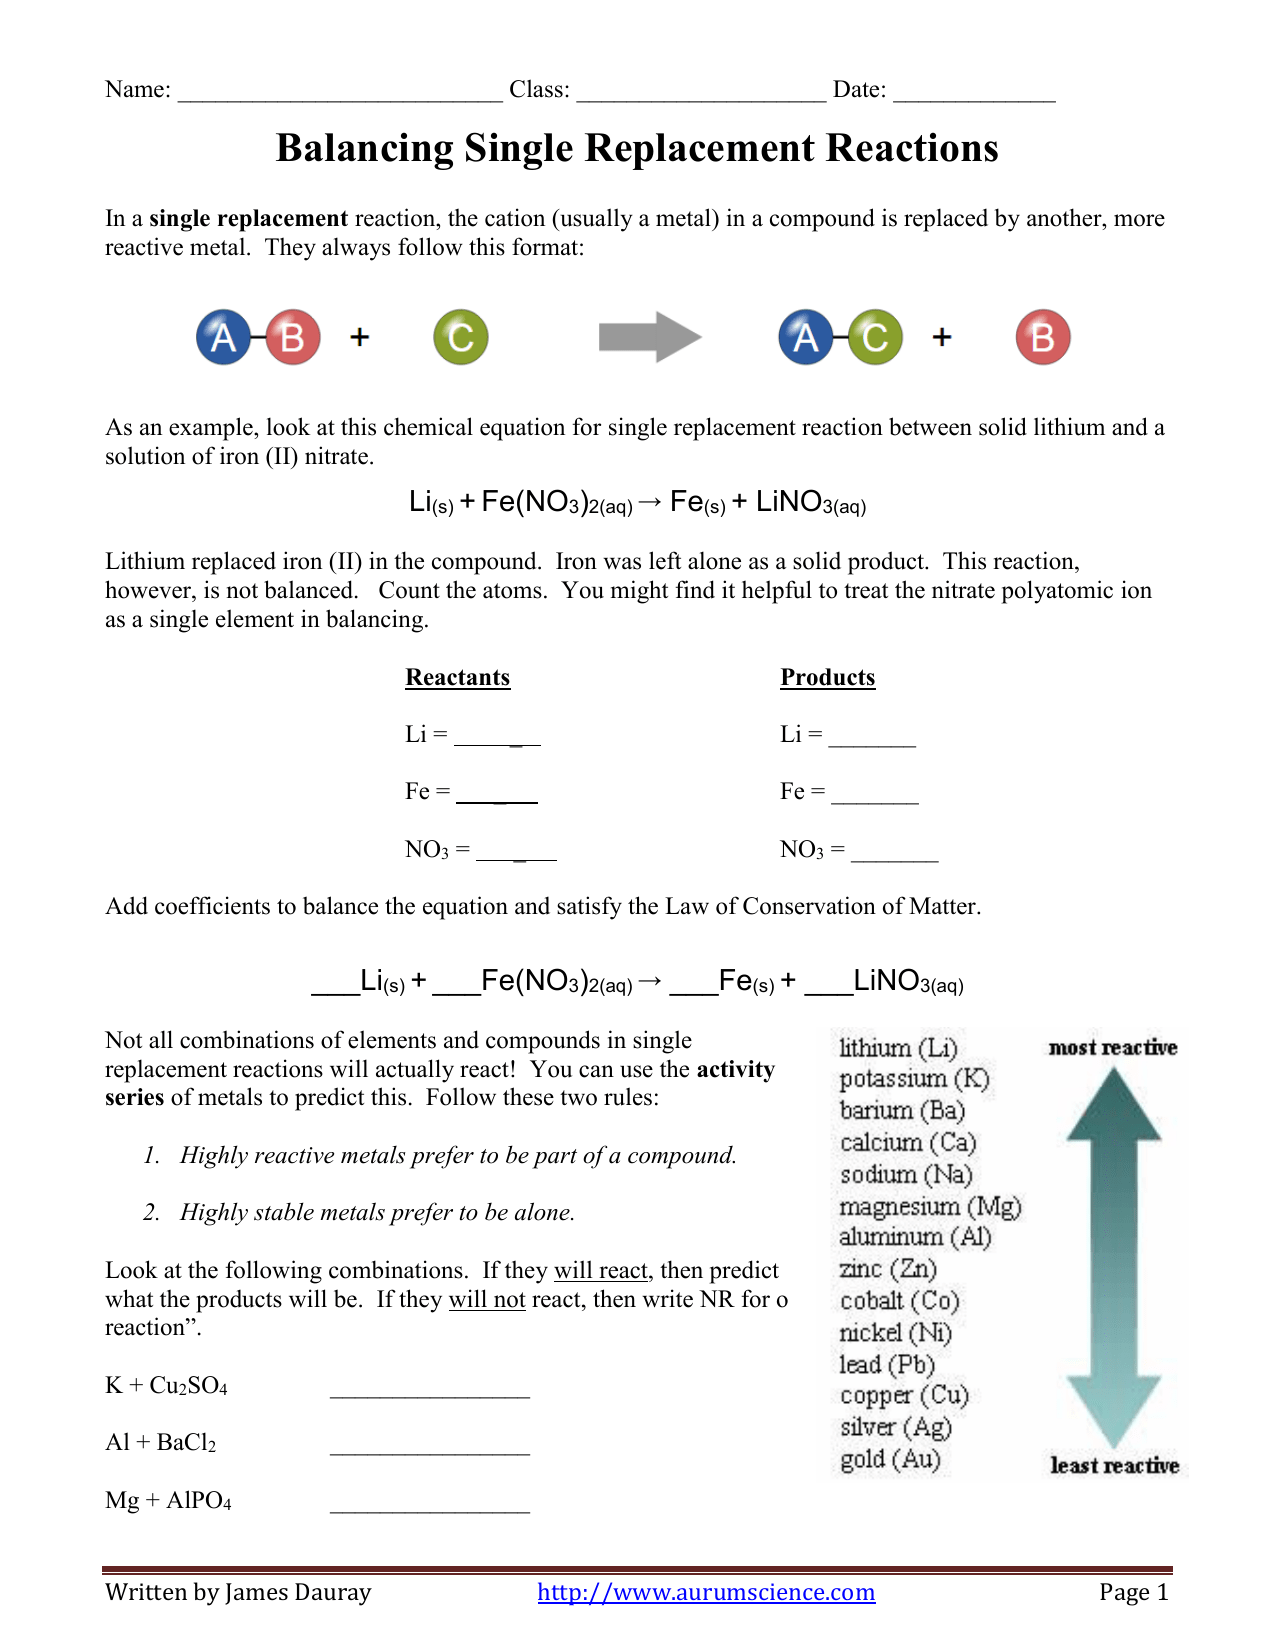 Balancing Equations For Single Replacement Reactions